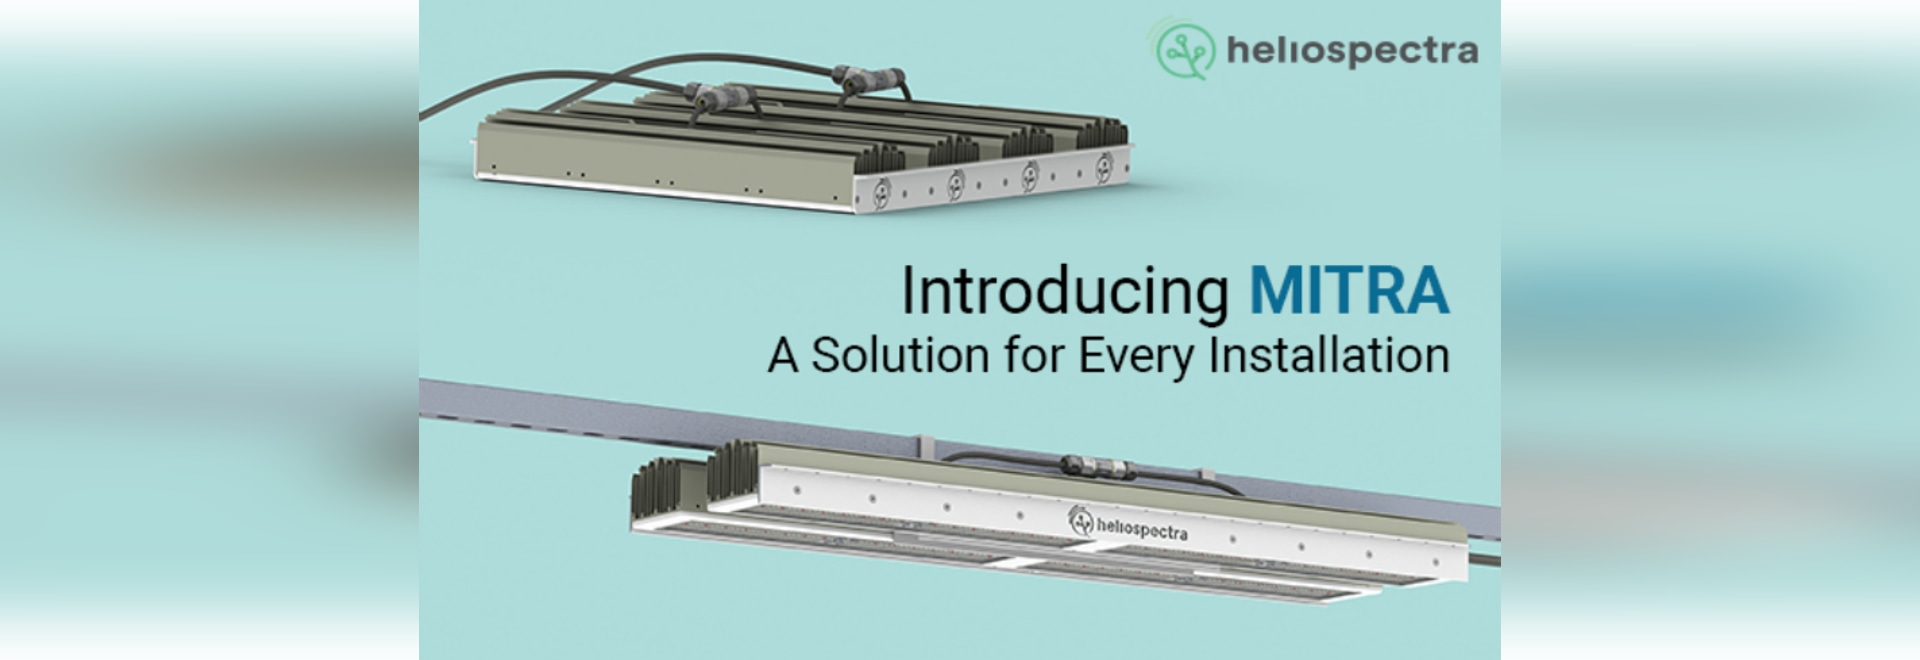 Heliospectra Introduces Revolutionary Modular LED Lighting Solution With Customizable Configurations